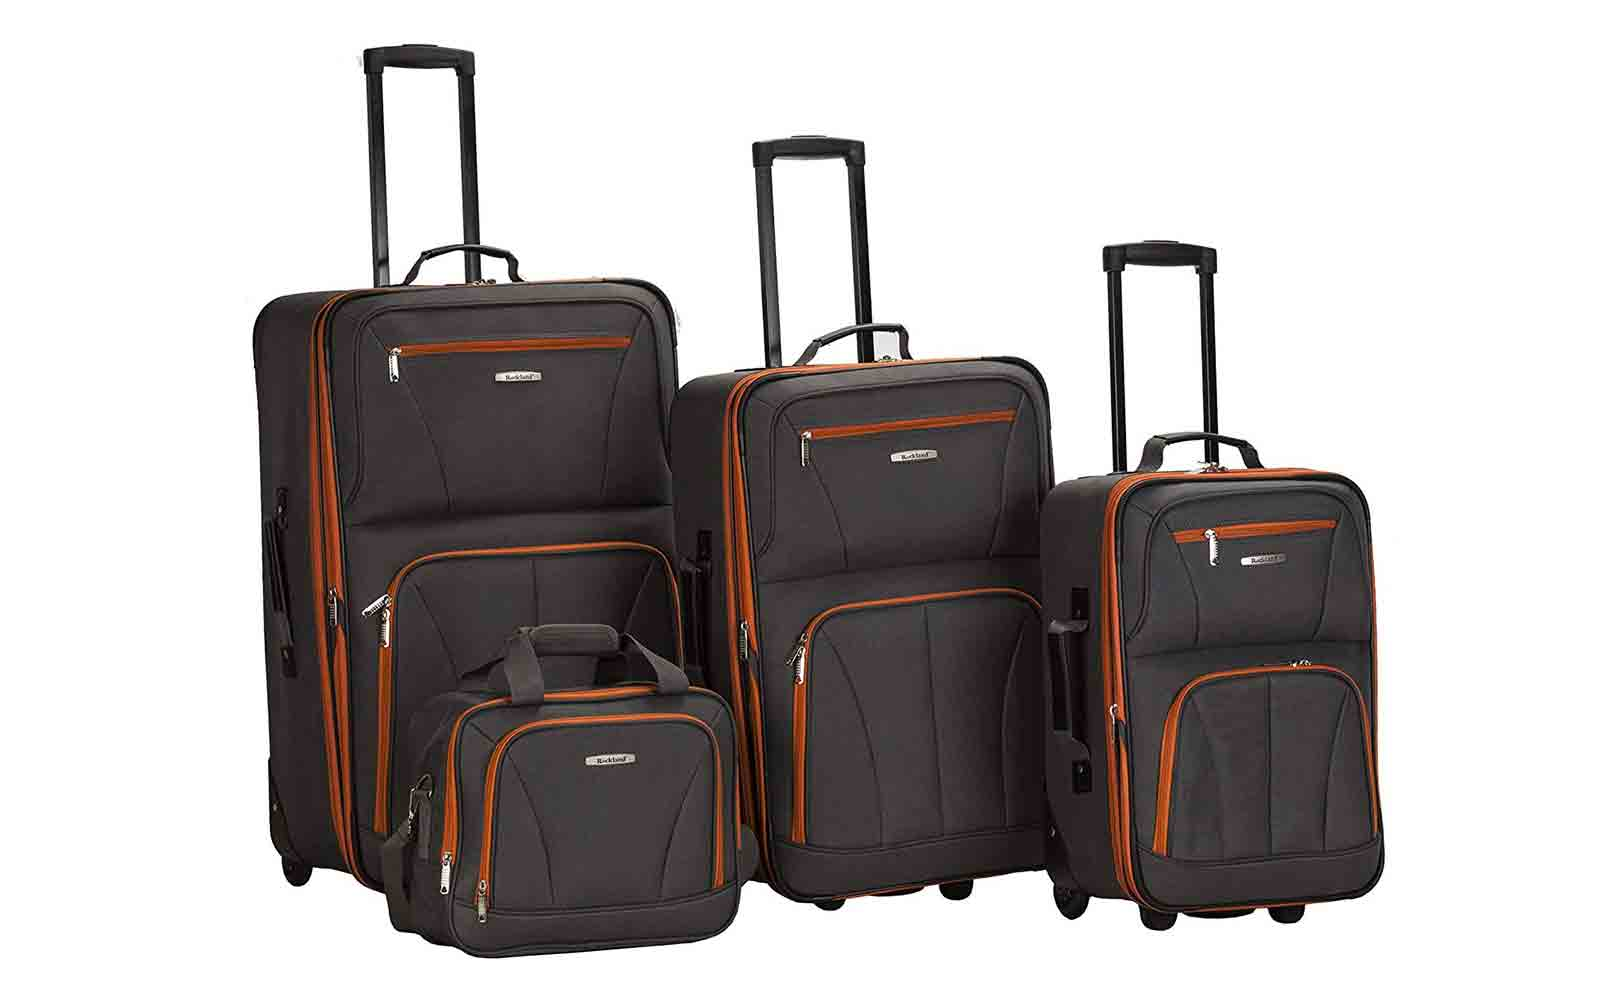 Rockland Luggage 4 Piece Set, Charcoal